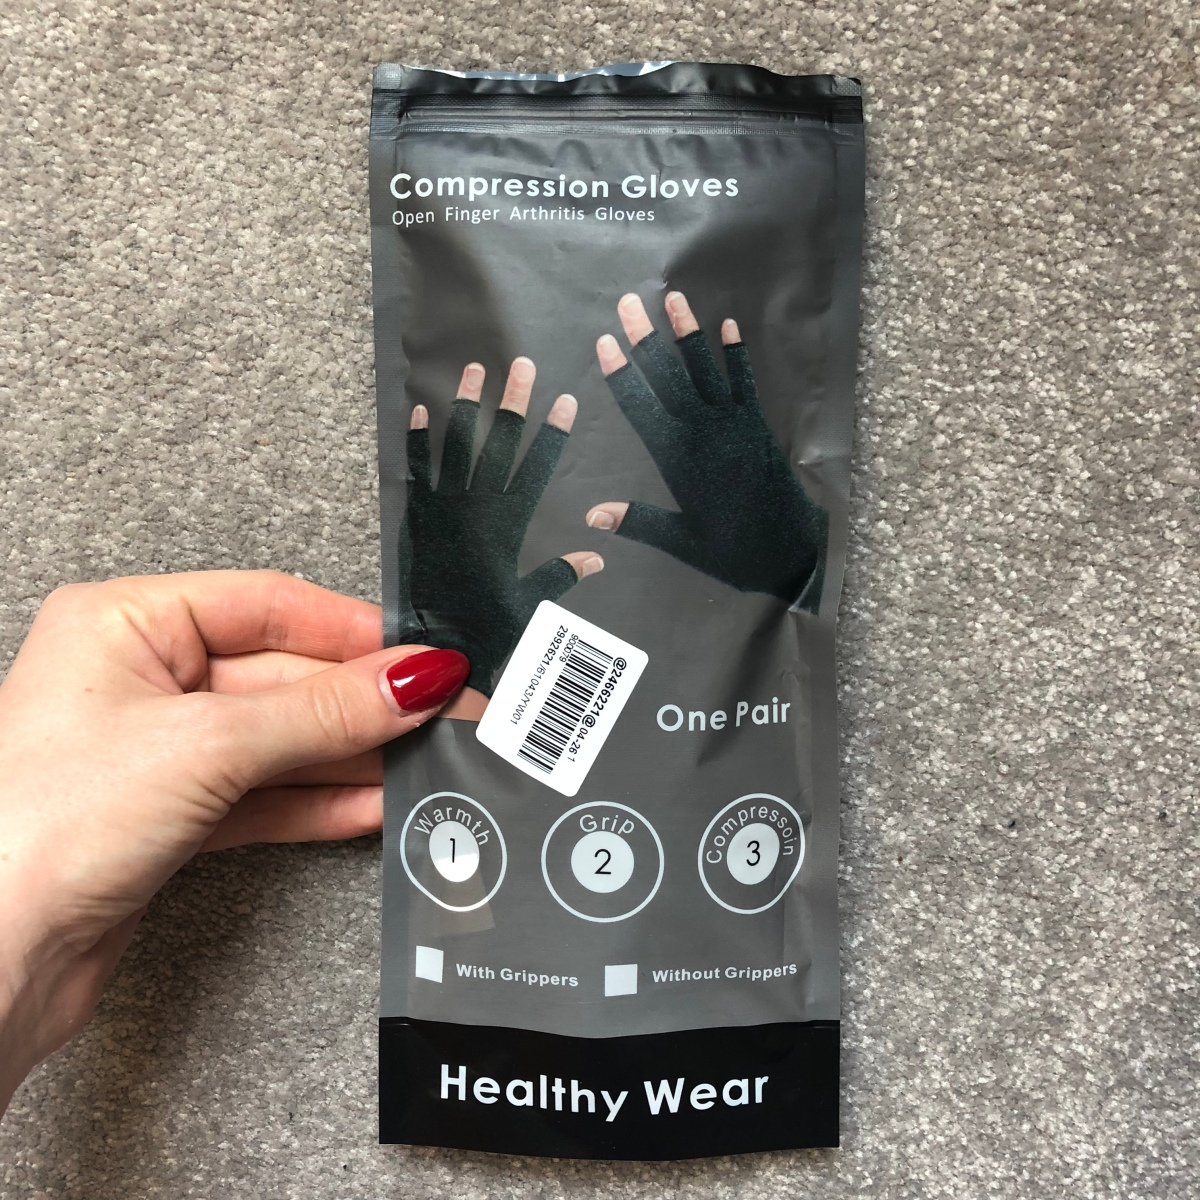 Flex Compression Gloves for Arthritis pain relief, rheumatoid arthritis, swelling, reduce swelling of joints, discount code, arthritis foodie, flex compression